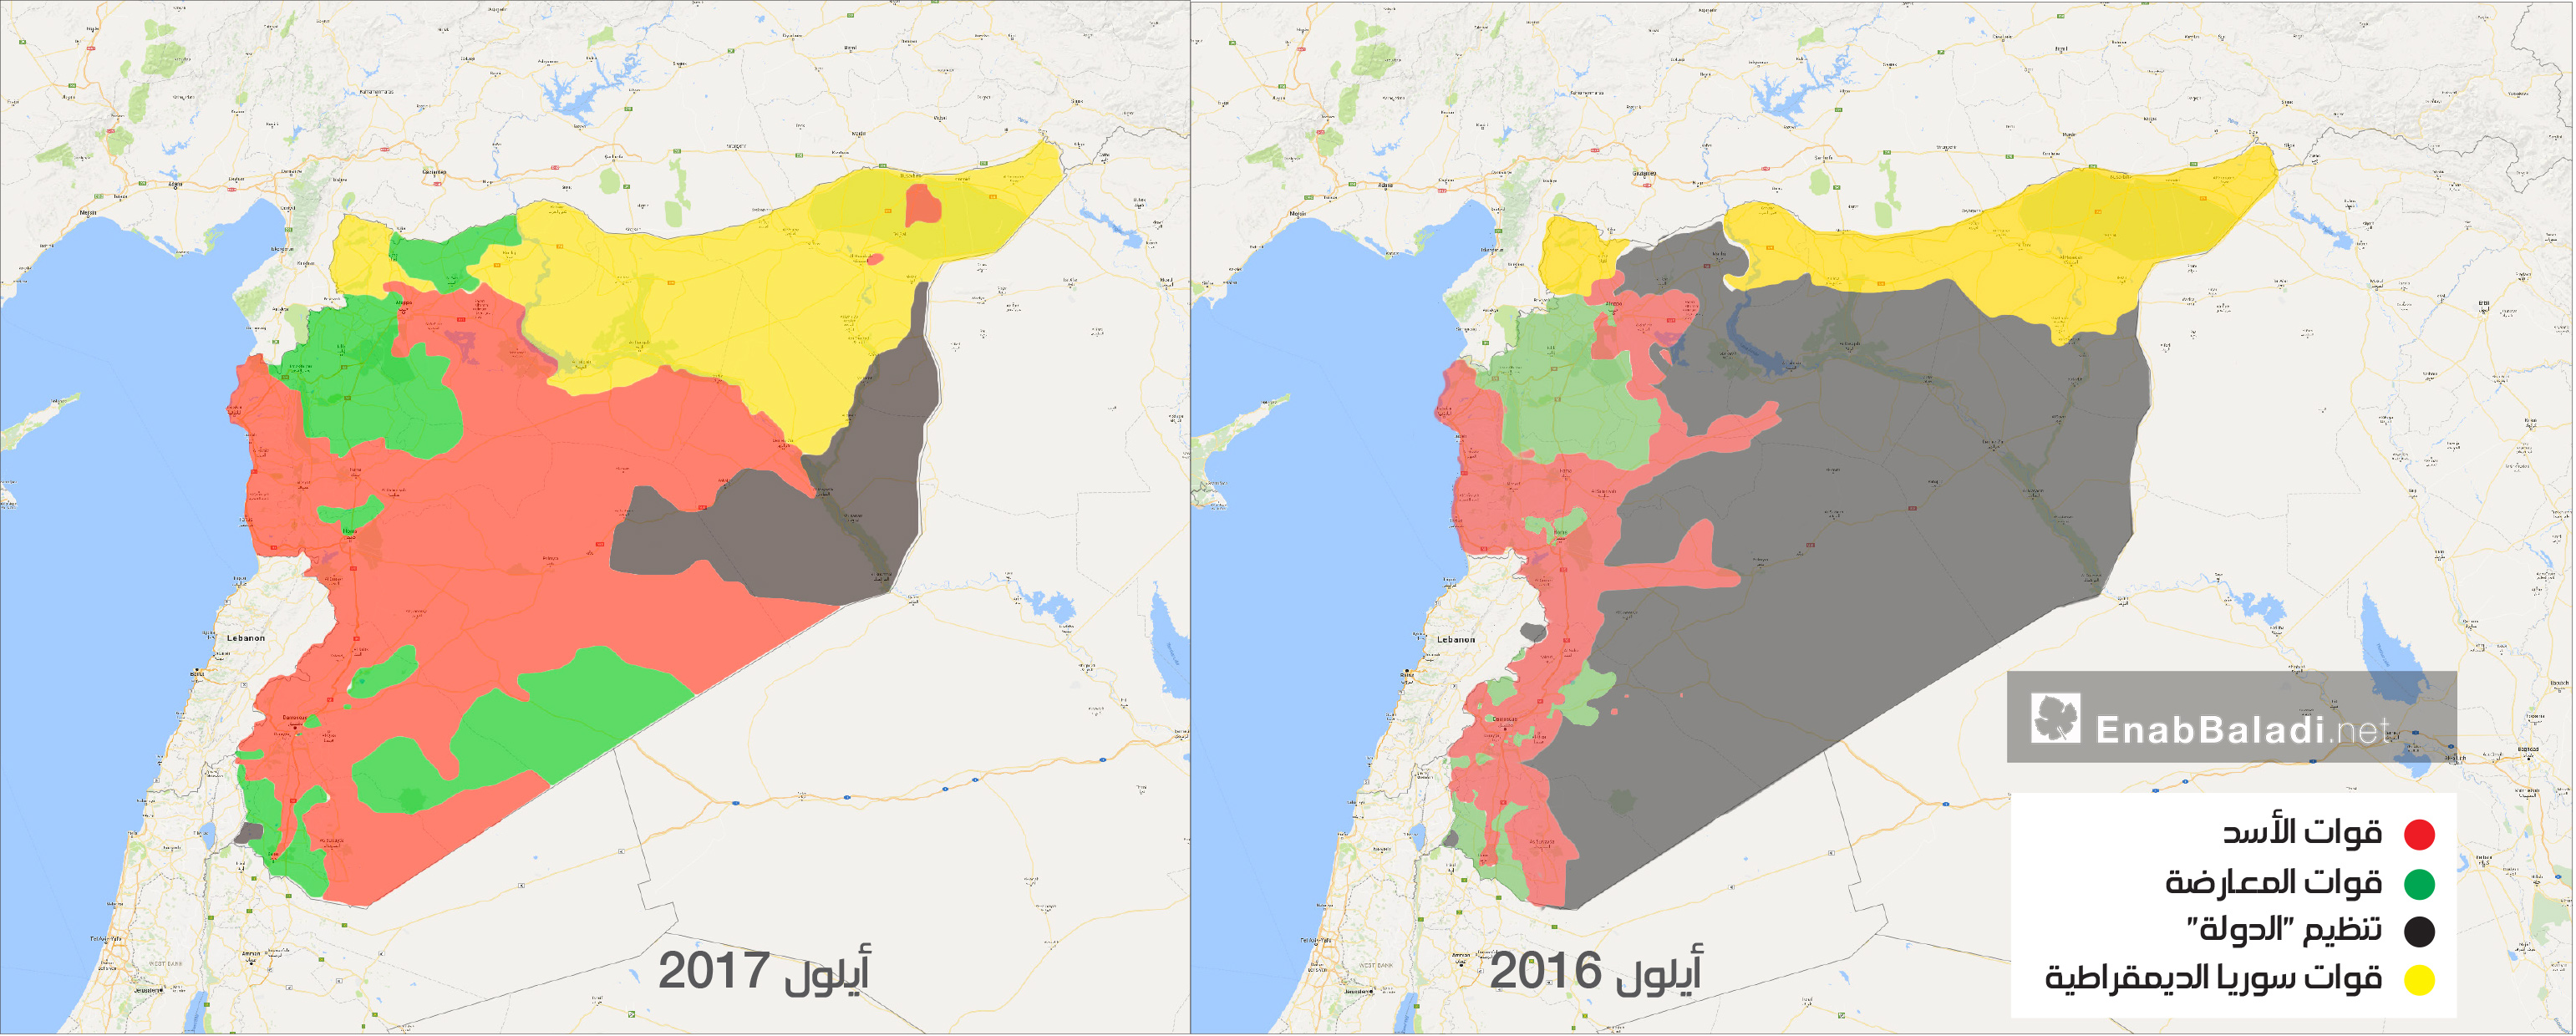 The change in the field control map in Syria between 2016 and 2017 (Enab Baladi)